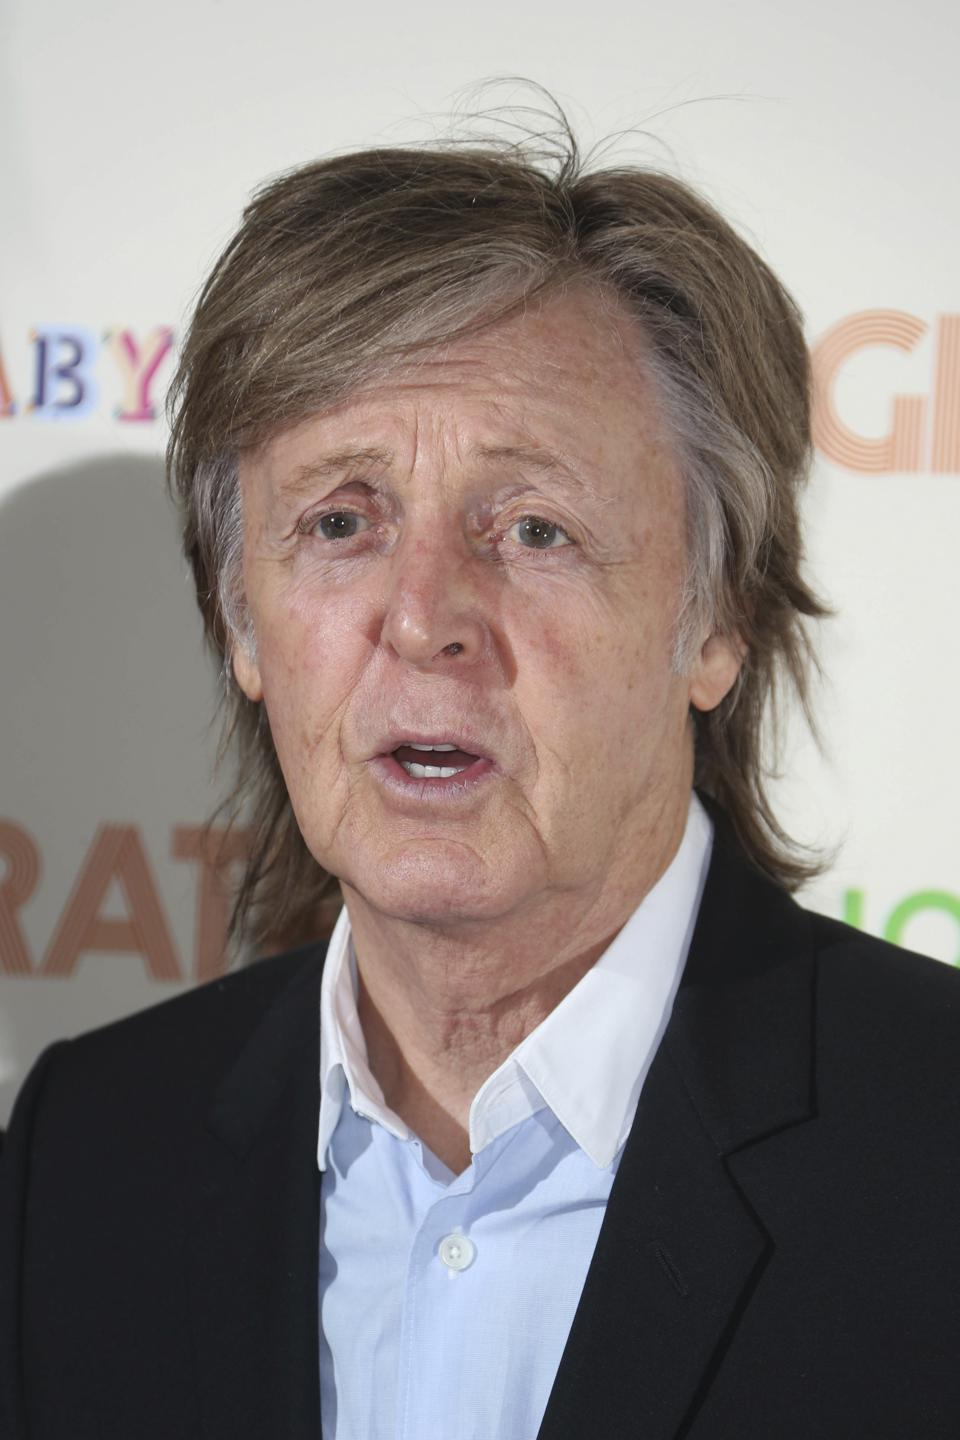 Sir Paul McCartney, The Master Of Content Marketing, Strikes Again